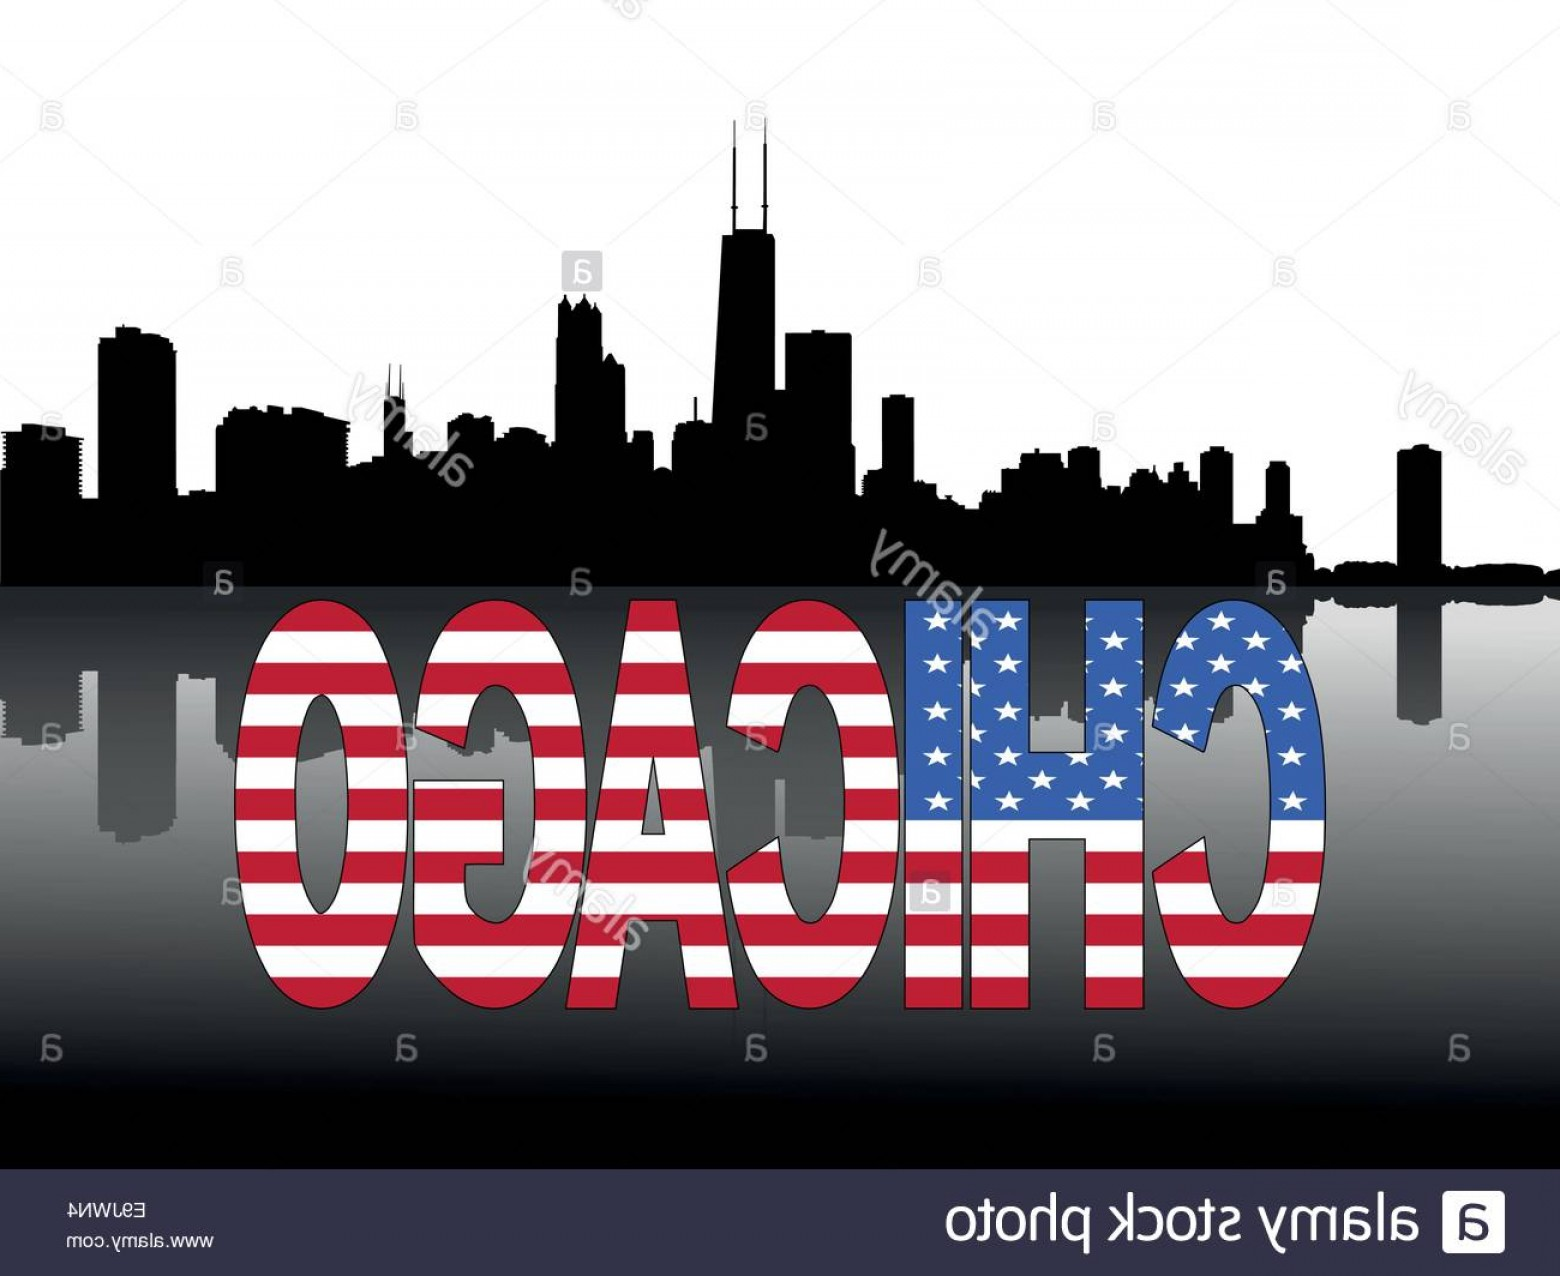 1560x1276 Stock Photo Chicago Skyline And Text Reflected With American Flag